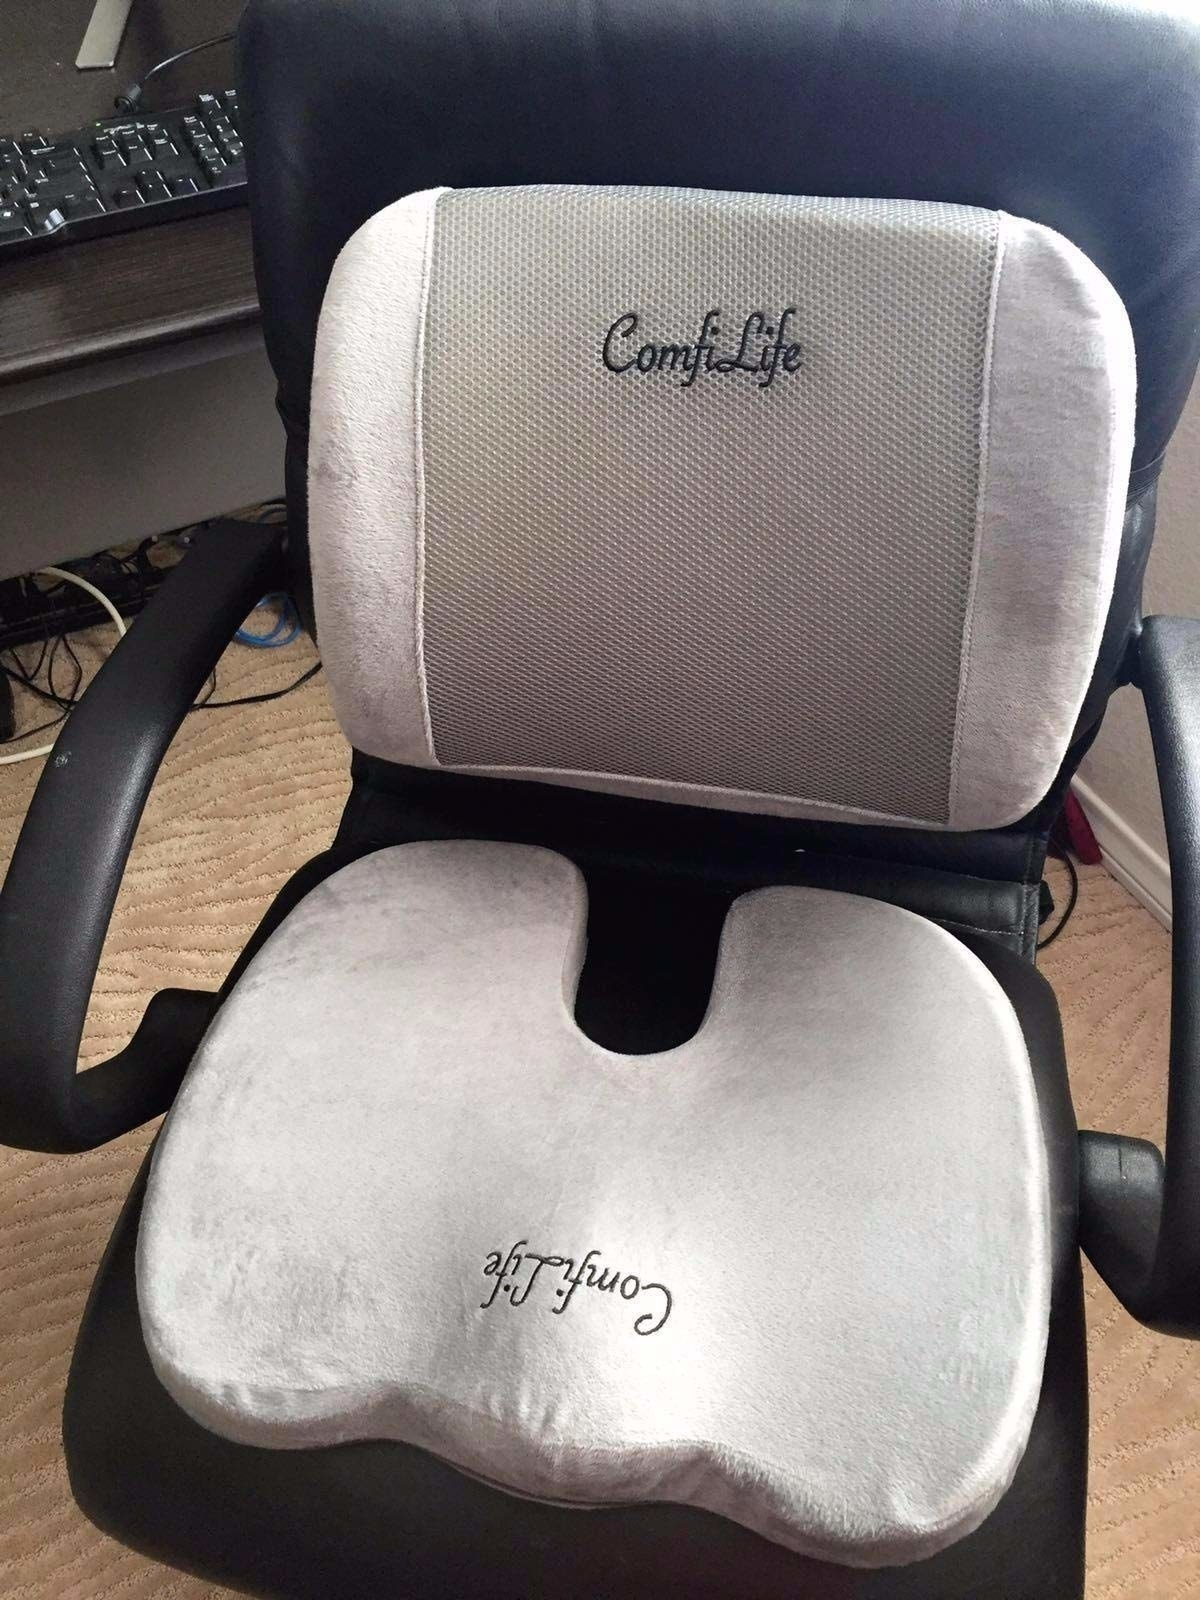 Reviewer image of the comfi life seat cushion and lumbar pillow on a desk chair